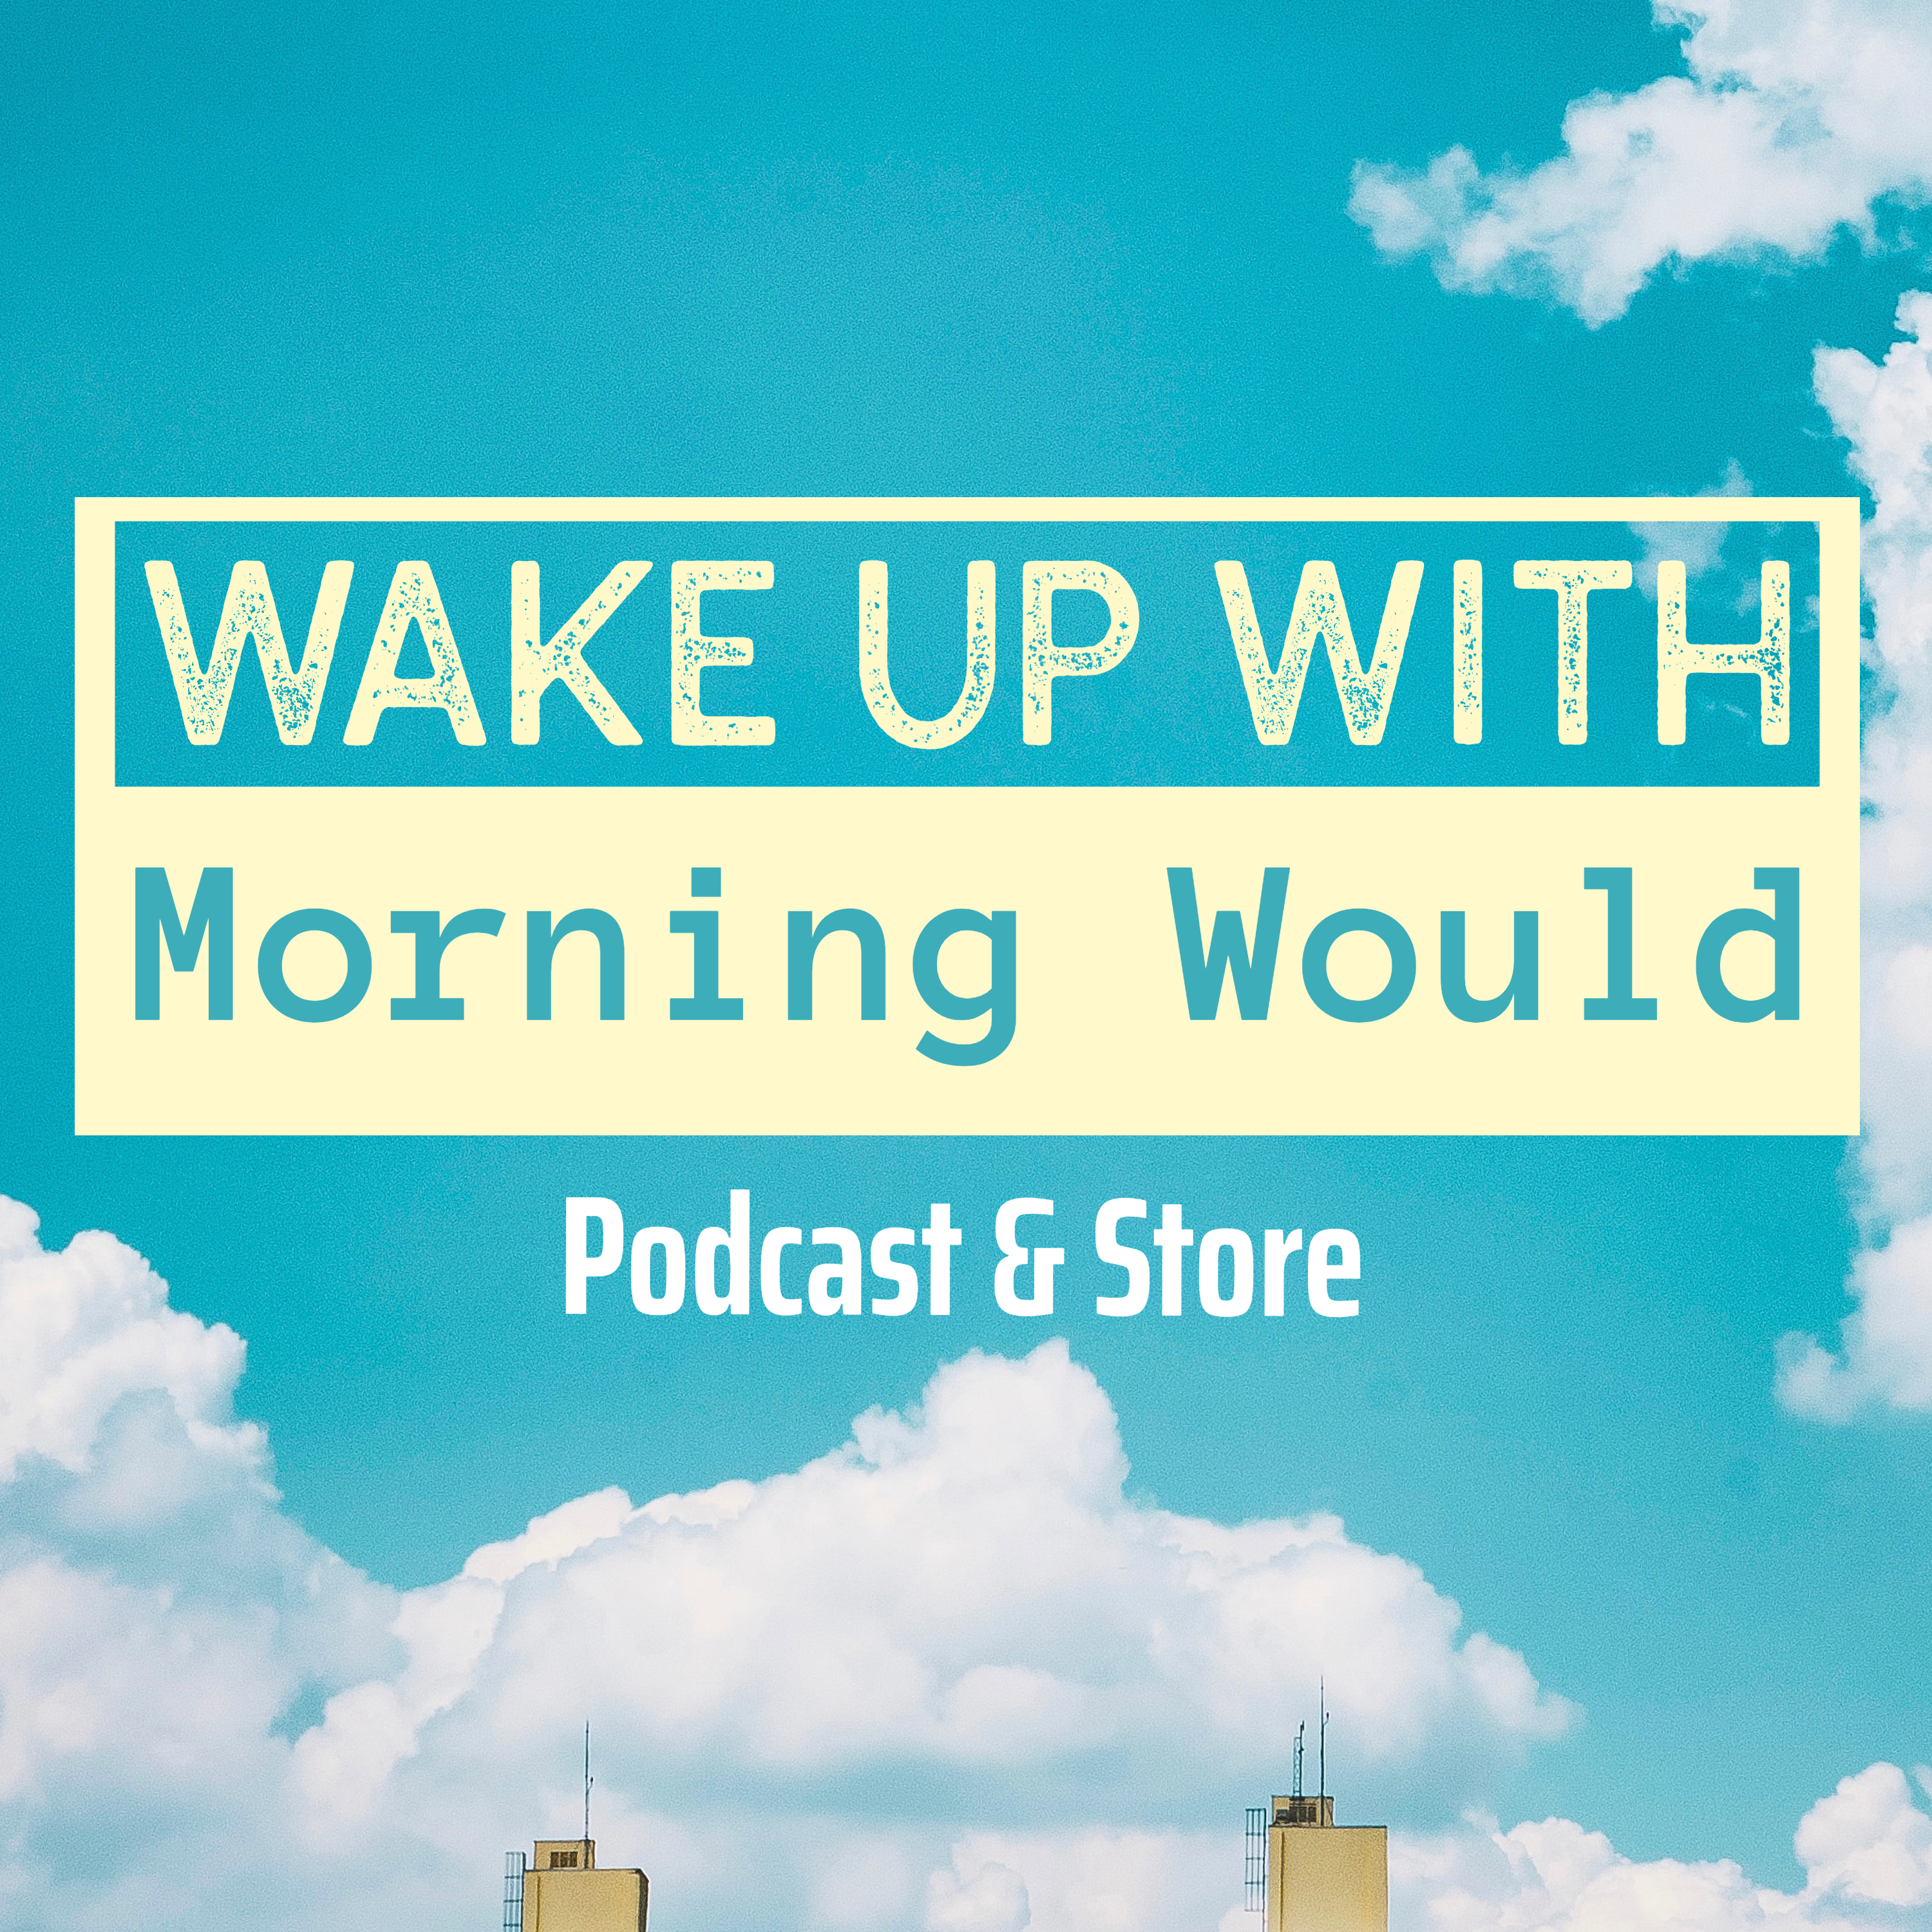 early-morning-podcast-cover-maker-with-a